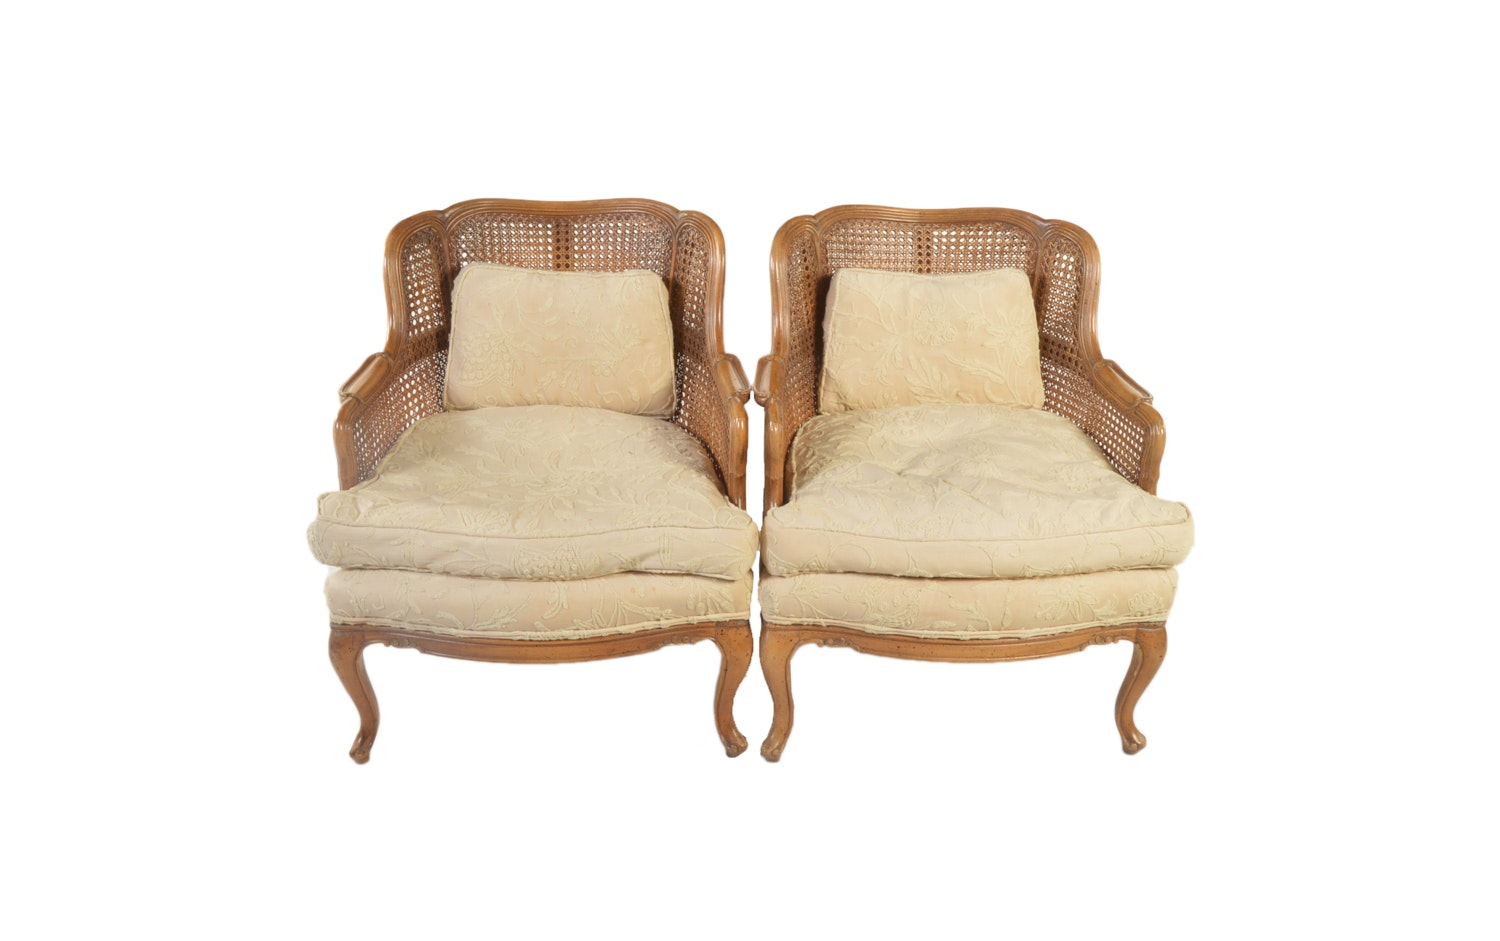 Vintage French Provincial Style Cane Back Armchairs